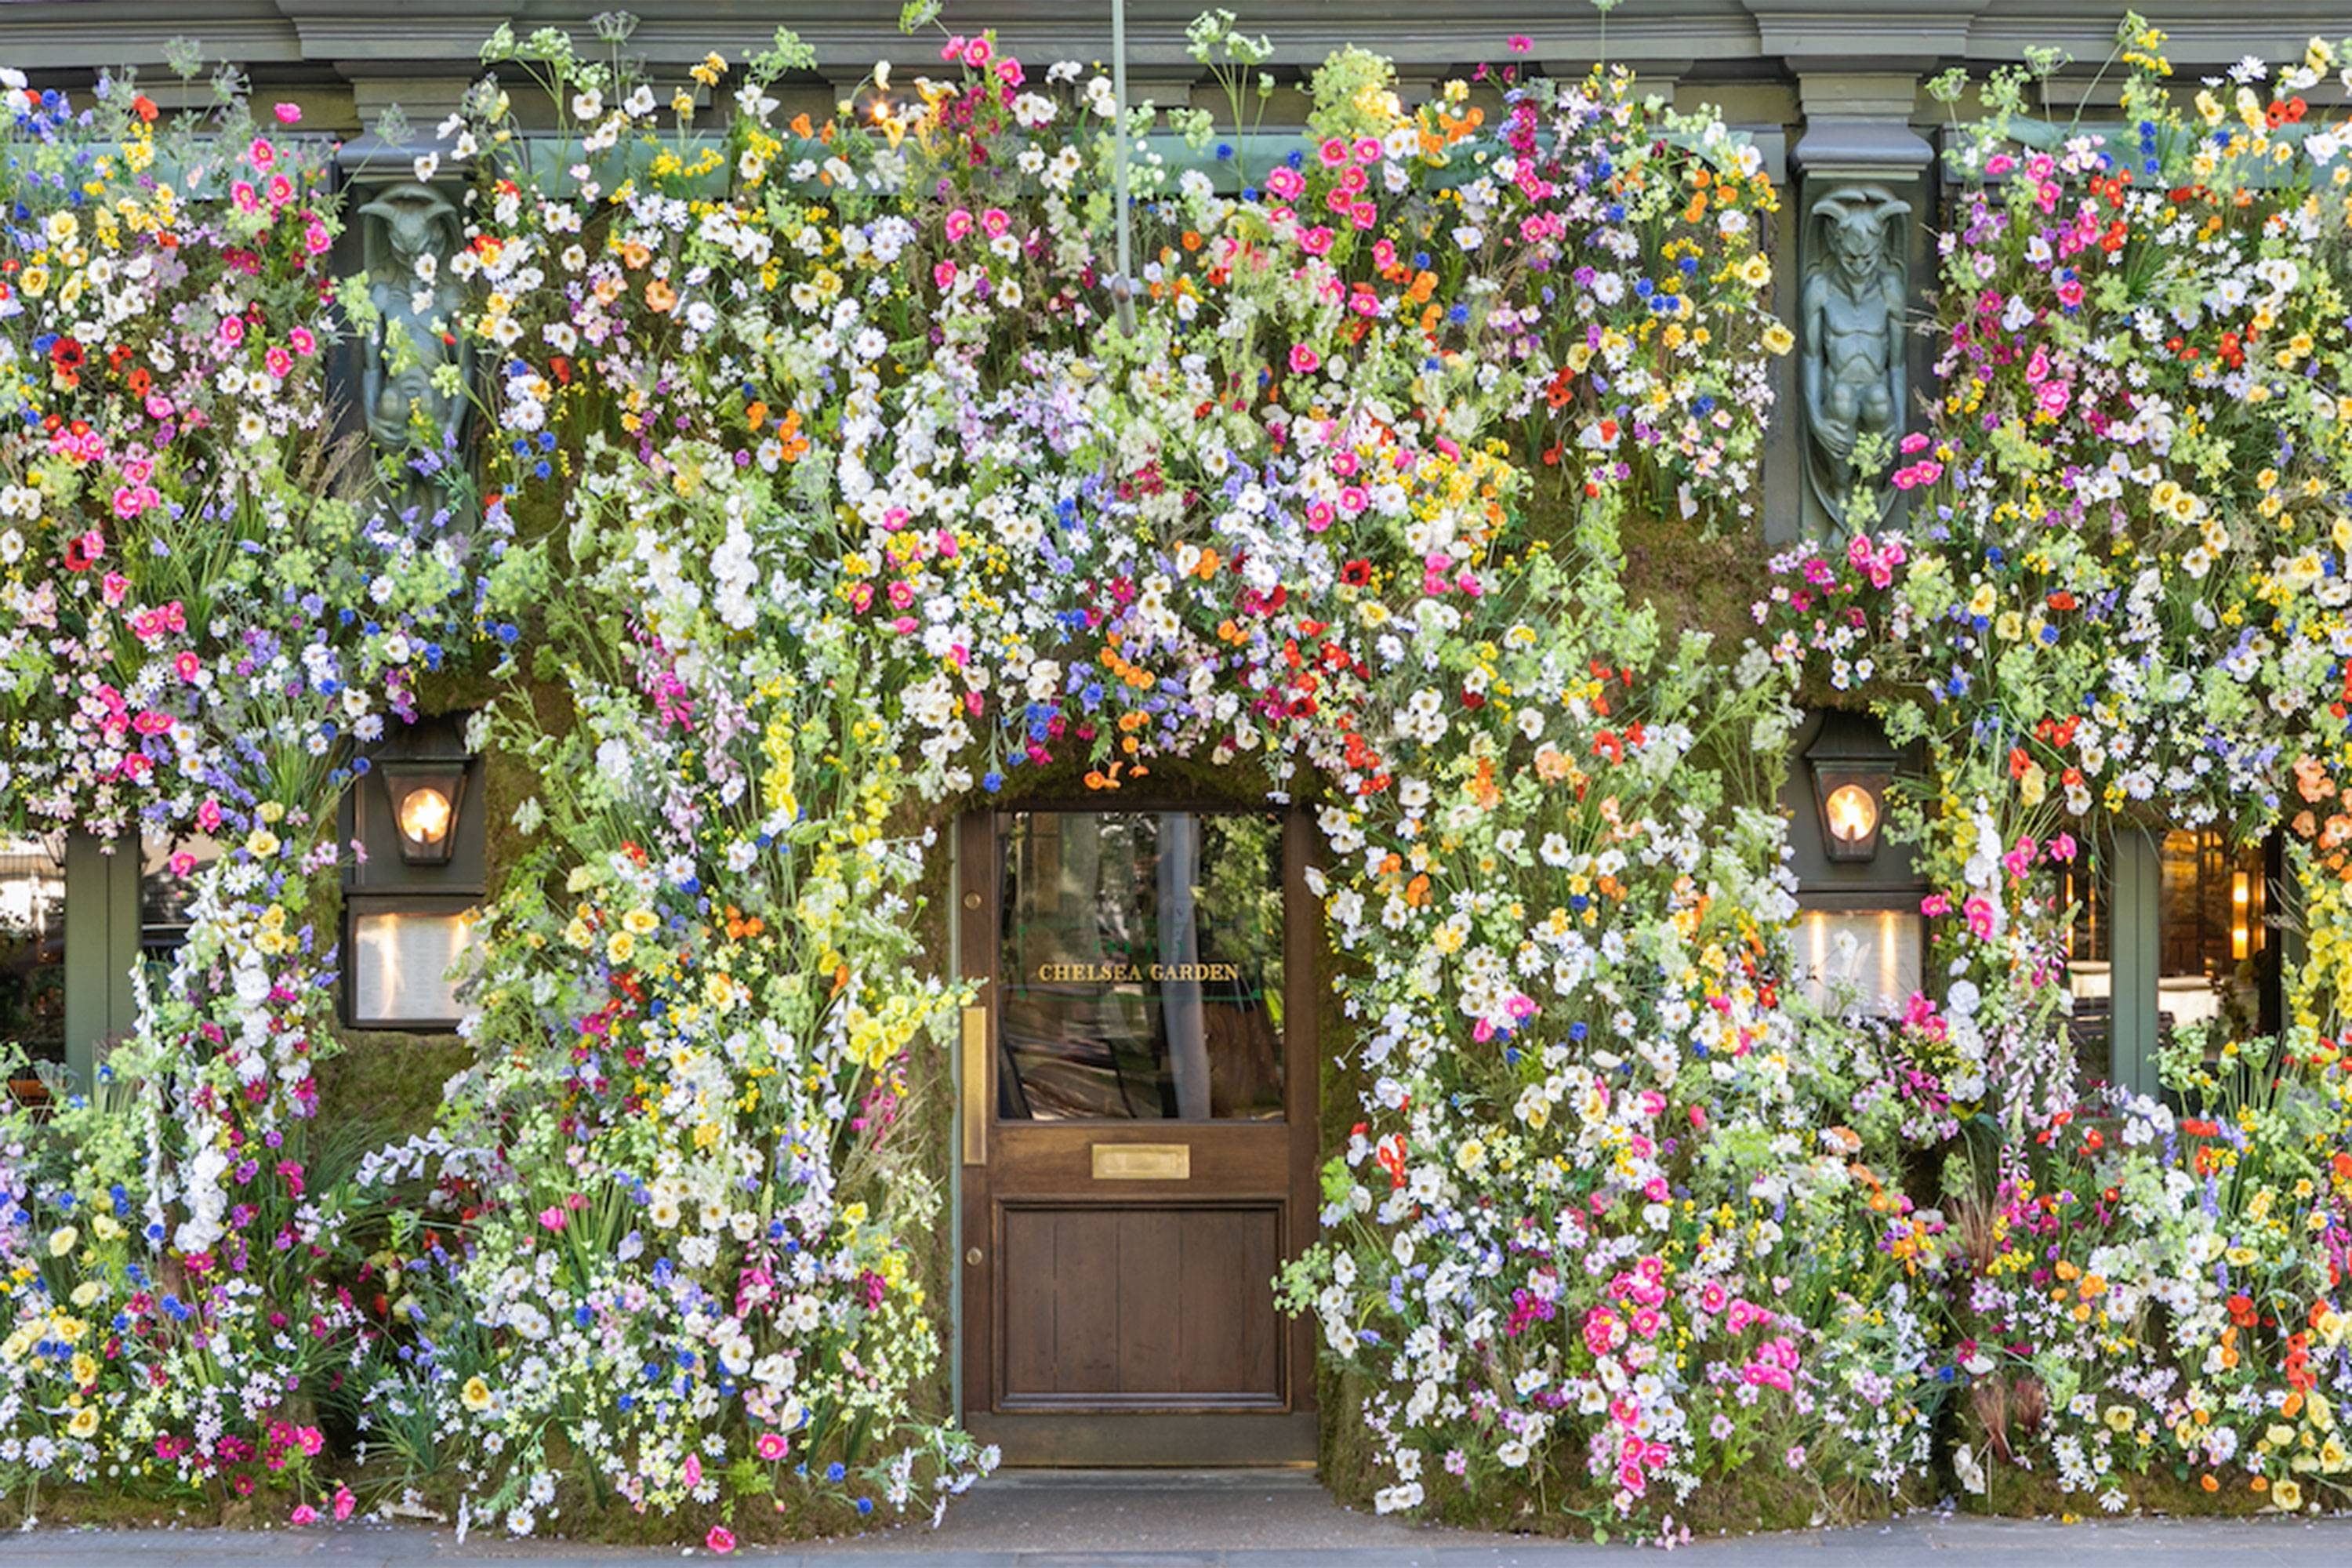 Pictures Of The Chelsea Flower Show 2019 Cn Traveller